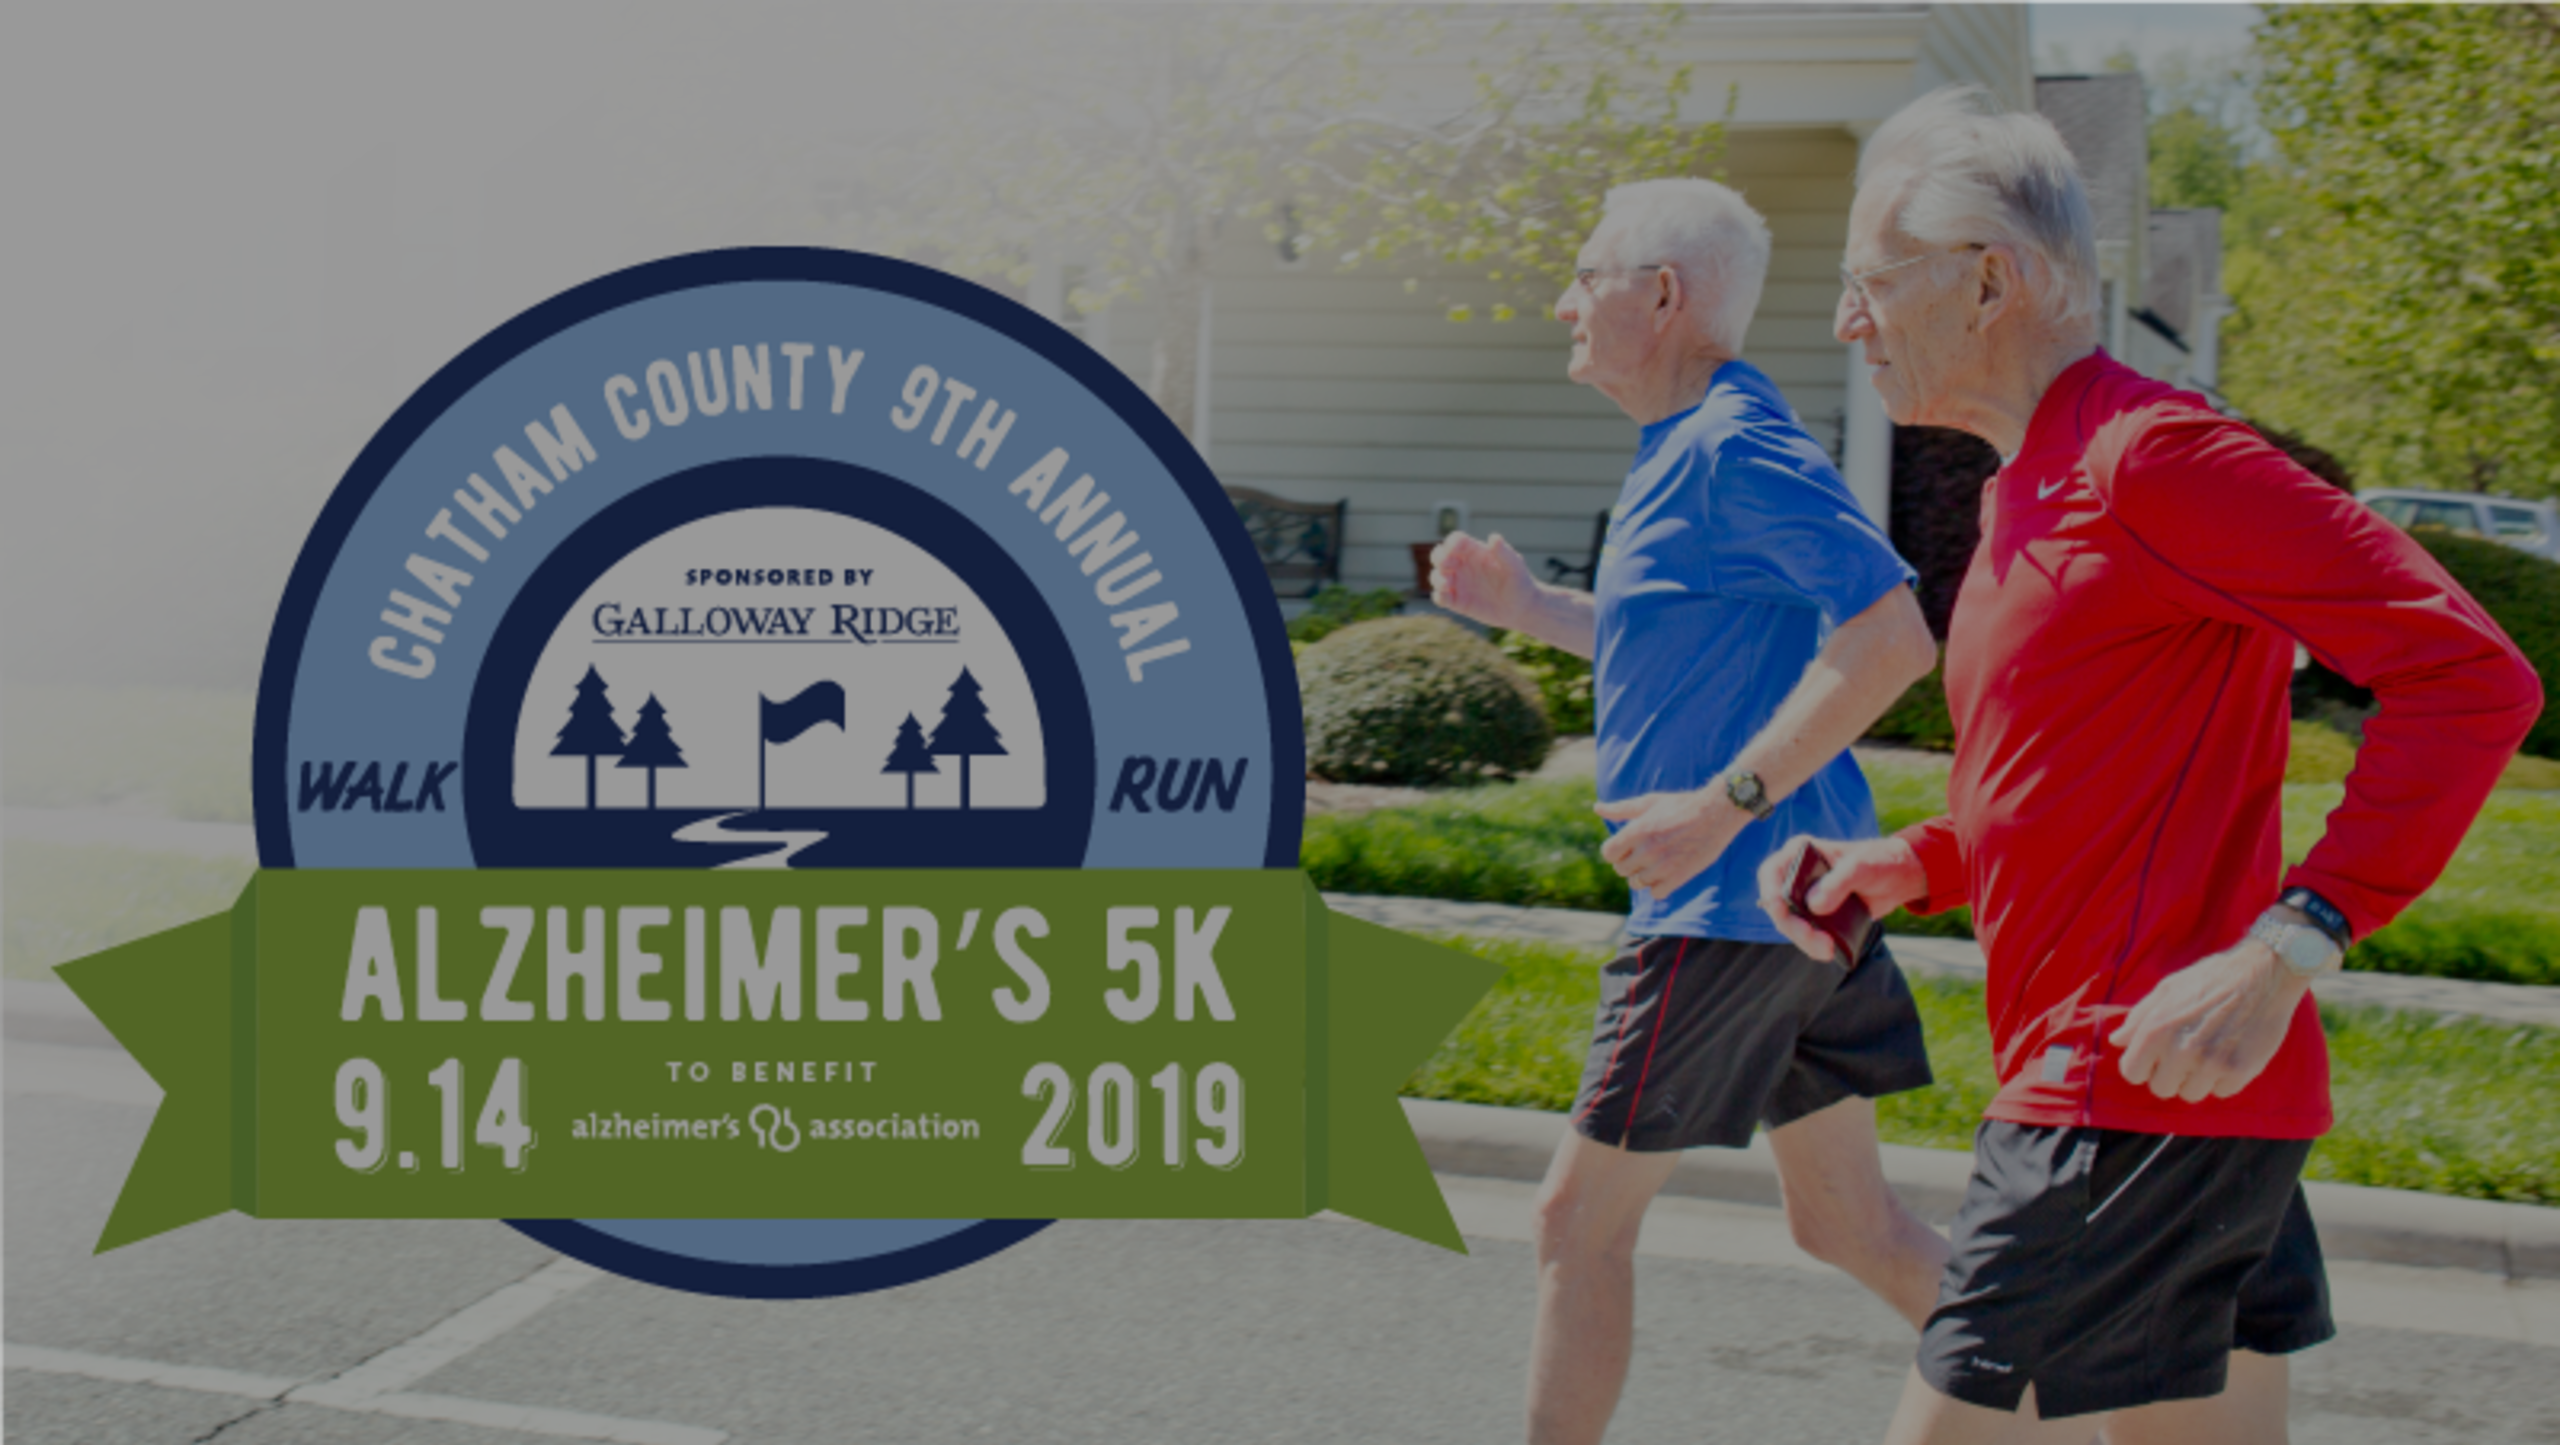 Chatham County 9th Annual Alzheimer's Walk & 5K Run